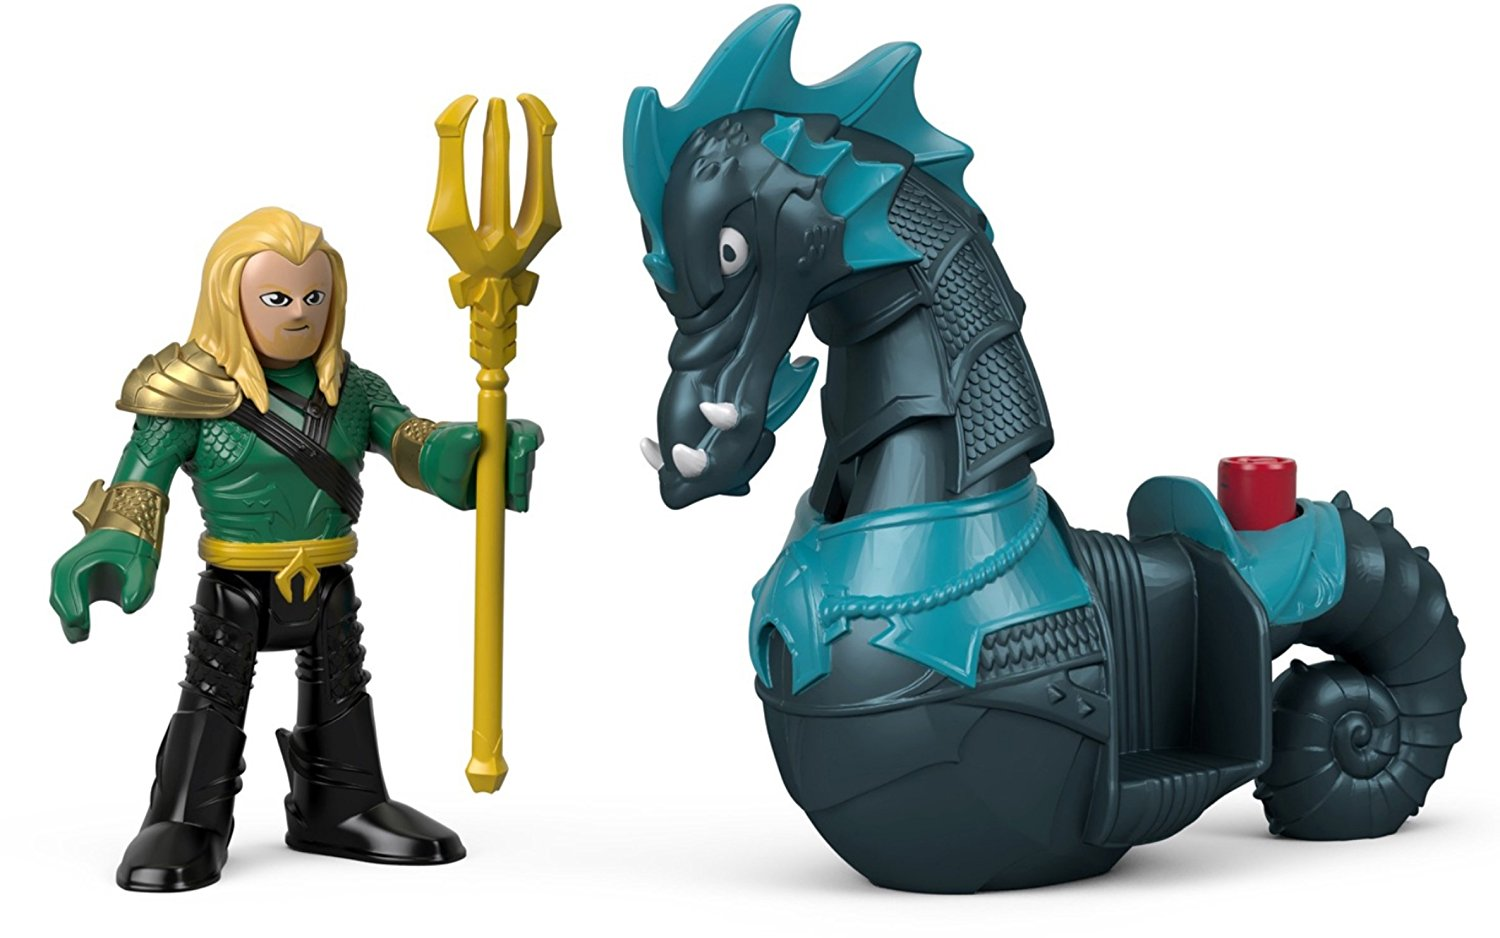 Fisher Price Imaginext DC Super Friends Aquaman & Seahorse Figure $6.99 On Amazon